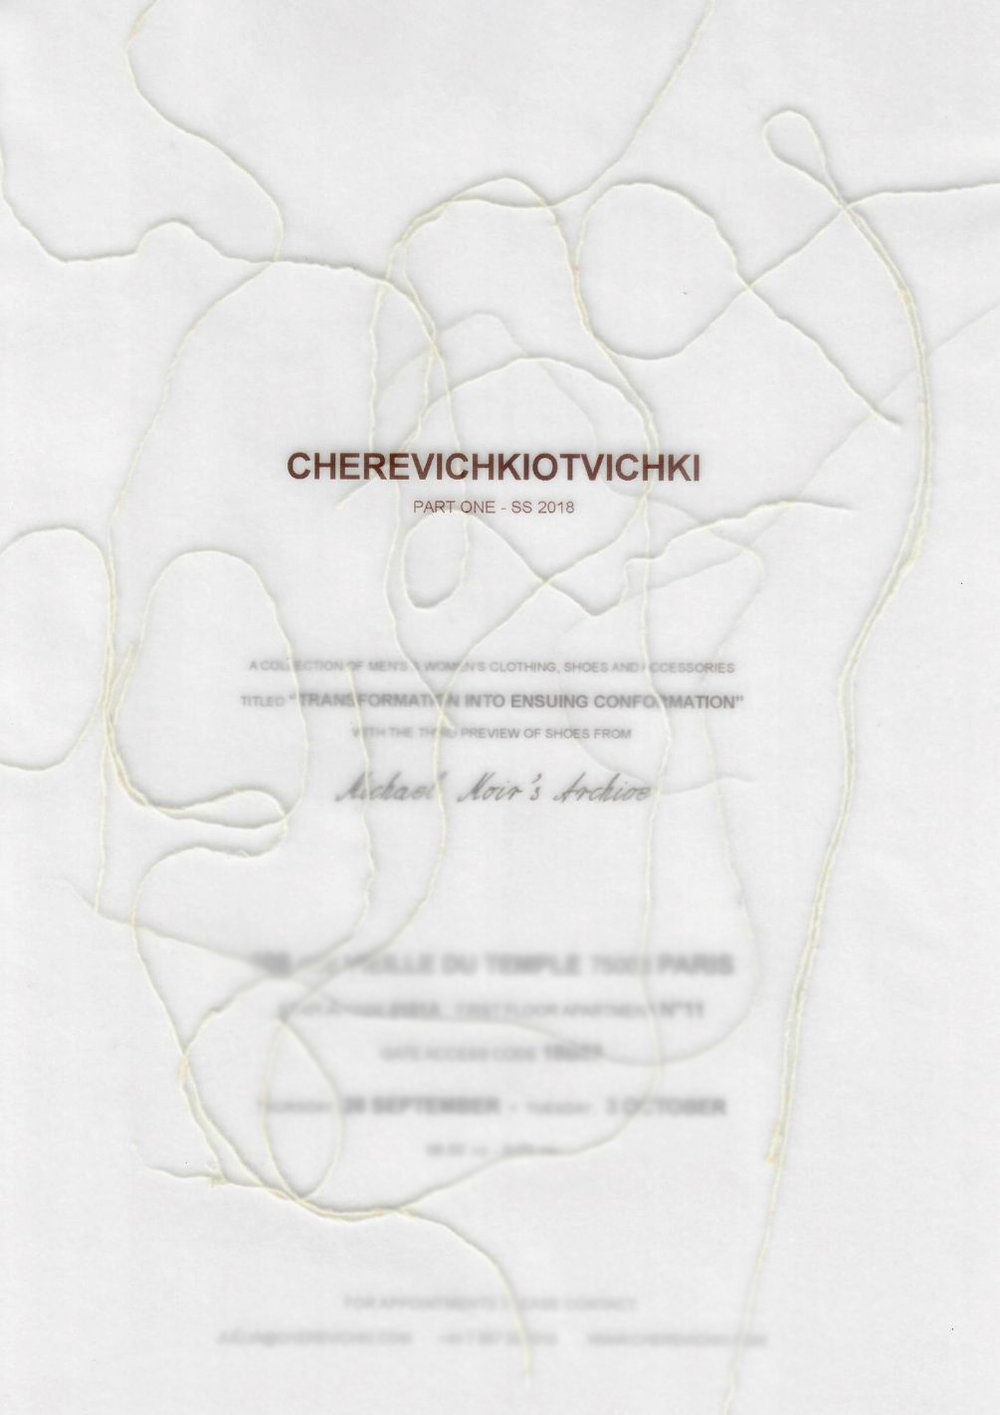 "'A Collection of Men's & Women's clothing, shoes and accessories titled ""TRANSFORMATION INTO ENSUING CONFORMATION"" with the third preview of shoes from Micheal Moir's Archive.'   'A shoe by Victoria', in Russian translates to the name of the clothing atelier 'cherevichki ot vichki.' The shoes are hand-made, natural dyed leather with wooden soles, using traditional Baltic techniques. Accessories include leather bags of the same quality and a collection of hand-dyed garments reminiscent of (to my eye) what was worn as undergarments in the late 1800's. It took me a week to get comfortable saying it, but now it's my favorite word. Cherevichkiotvichki. Try it."